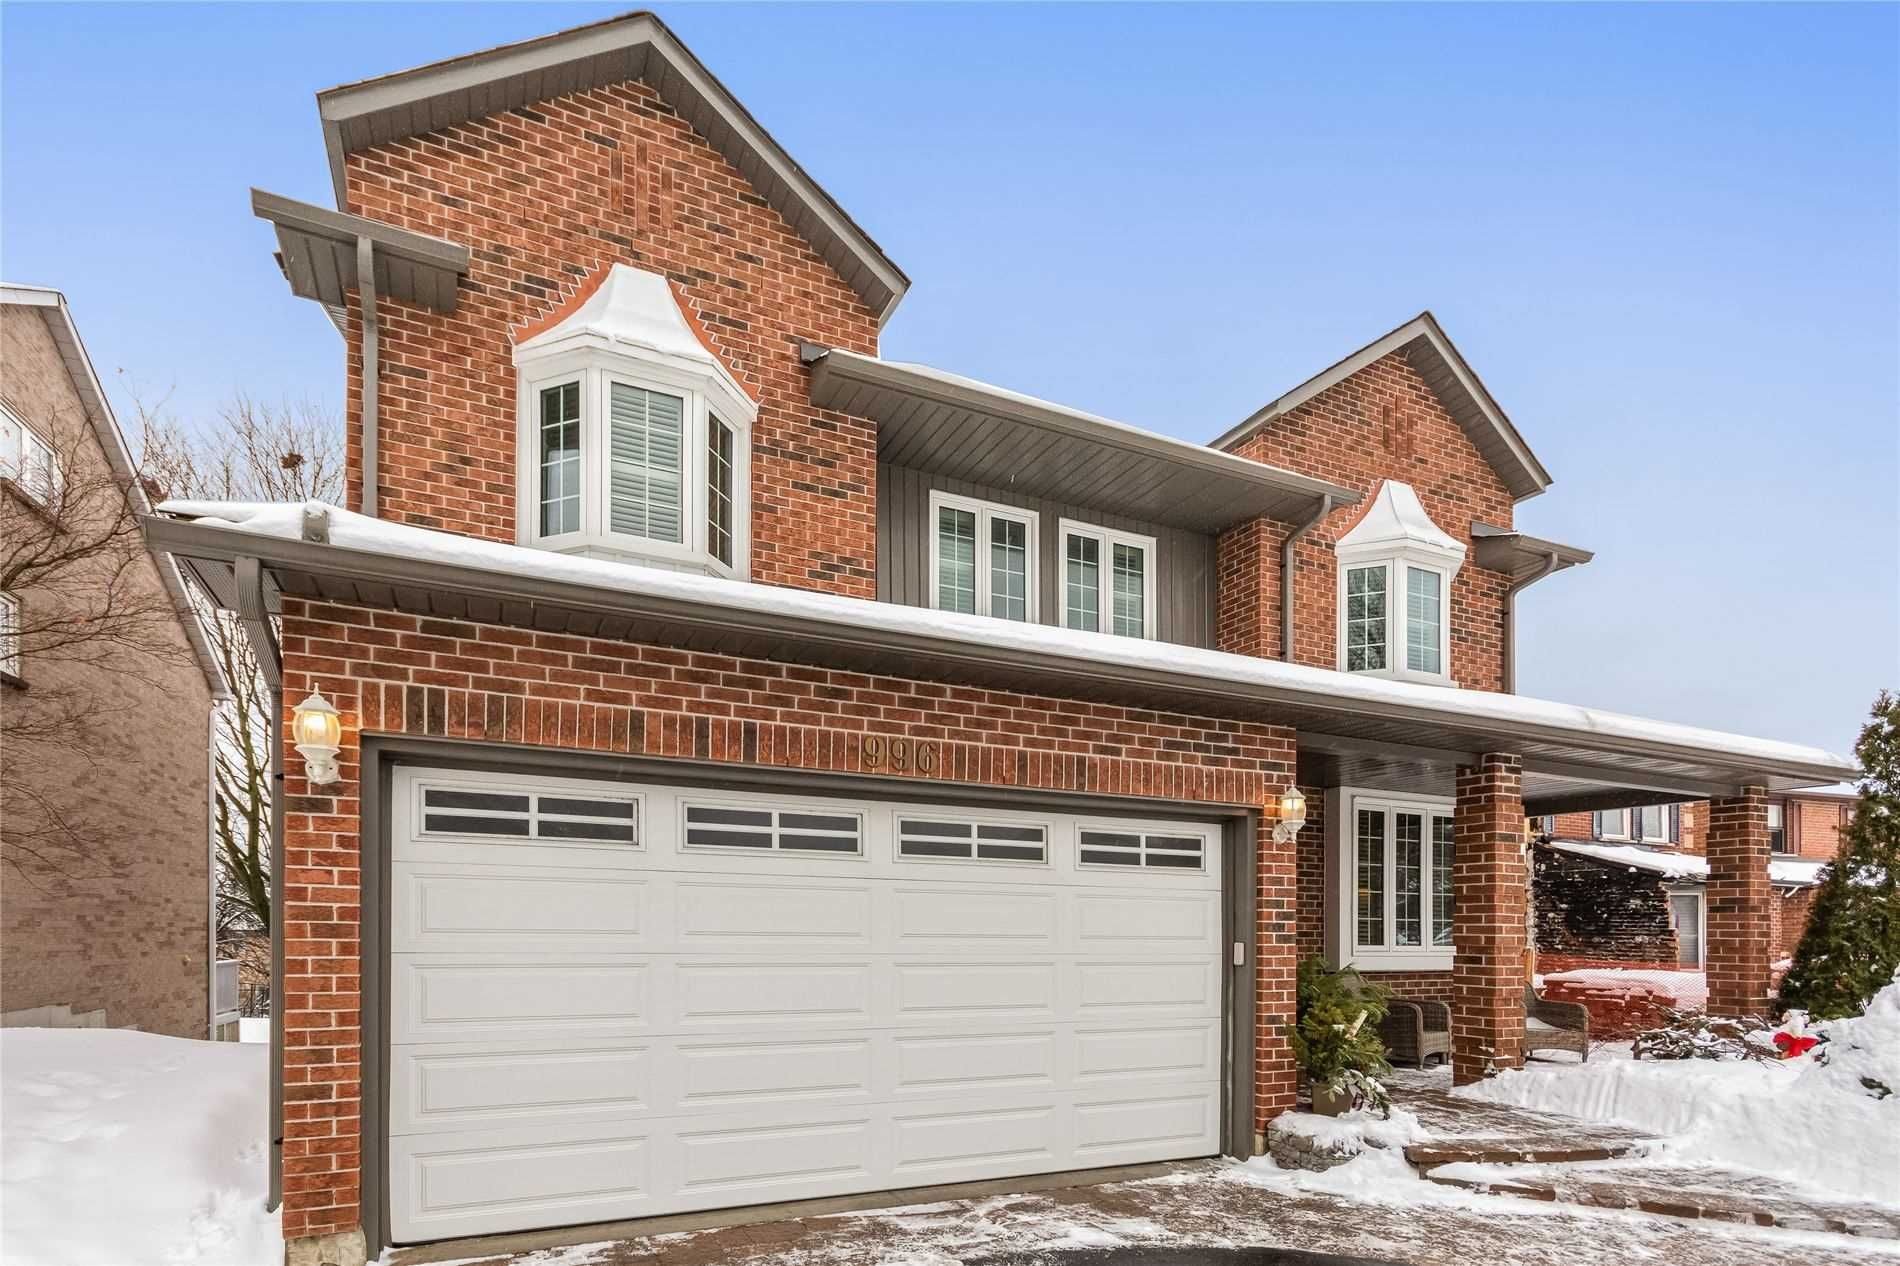 Main Photo: 996 Rambleberry Avenue in Pickering: Liverpool House (2-Storey) for sale : MLS®# E5170404